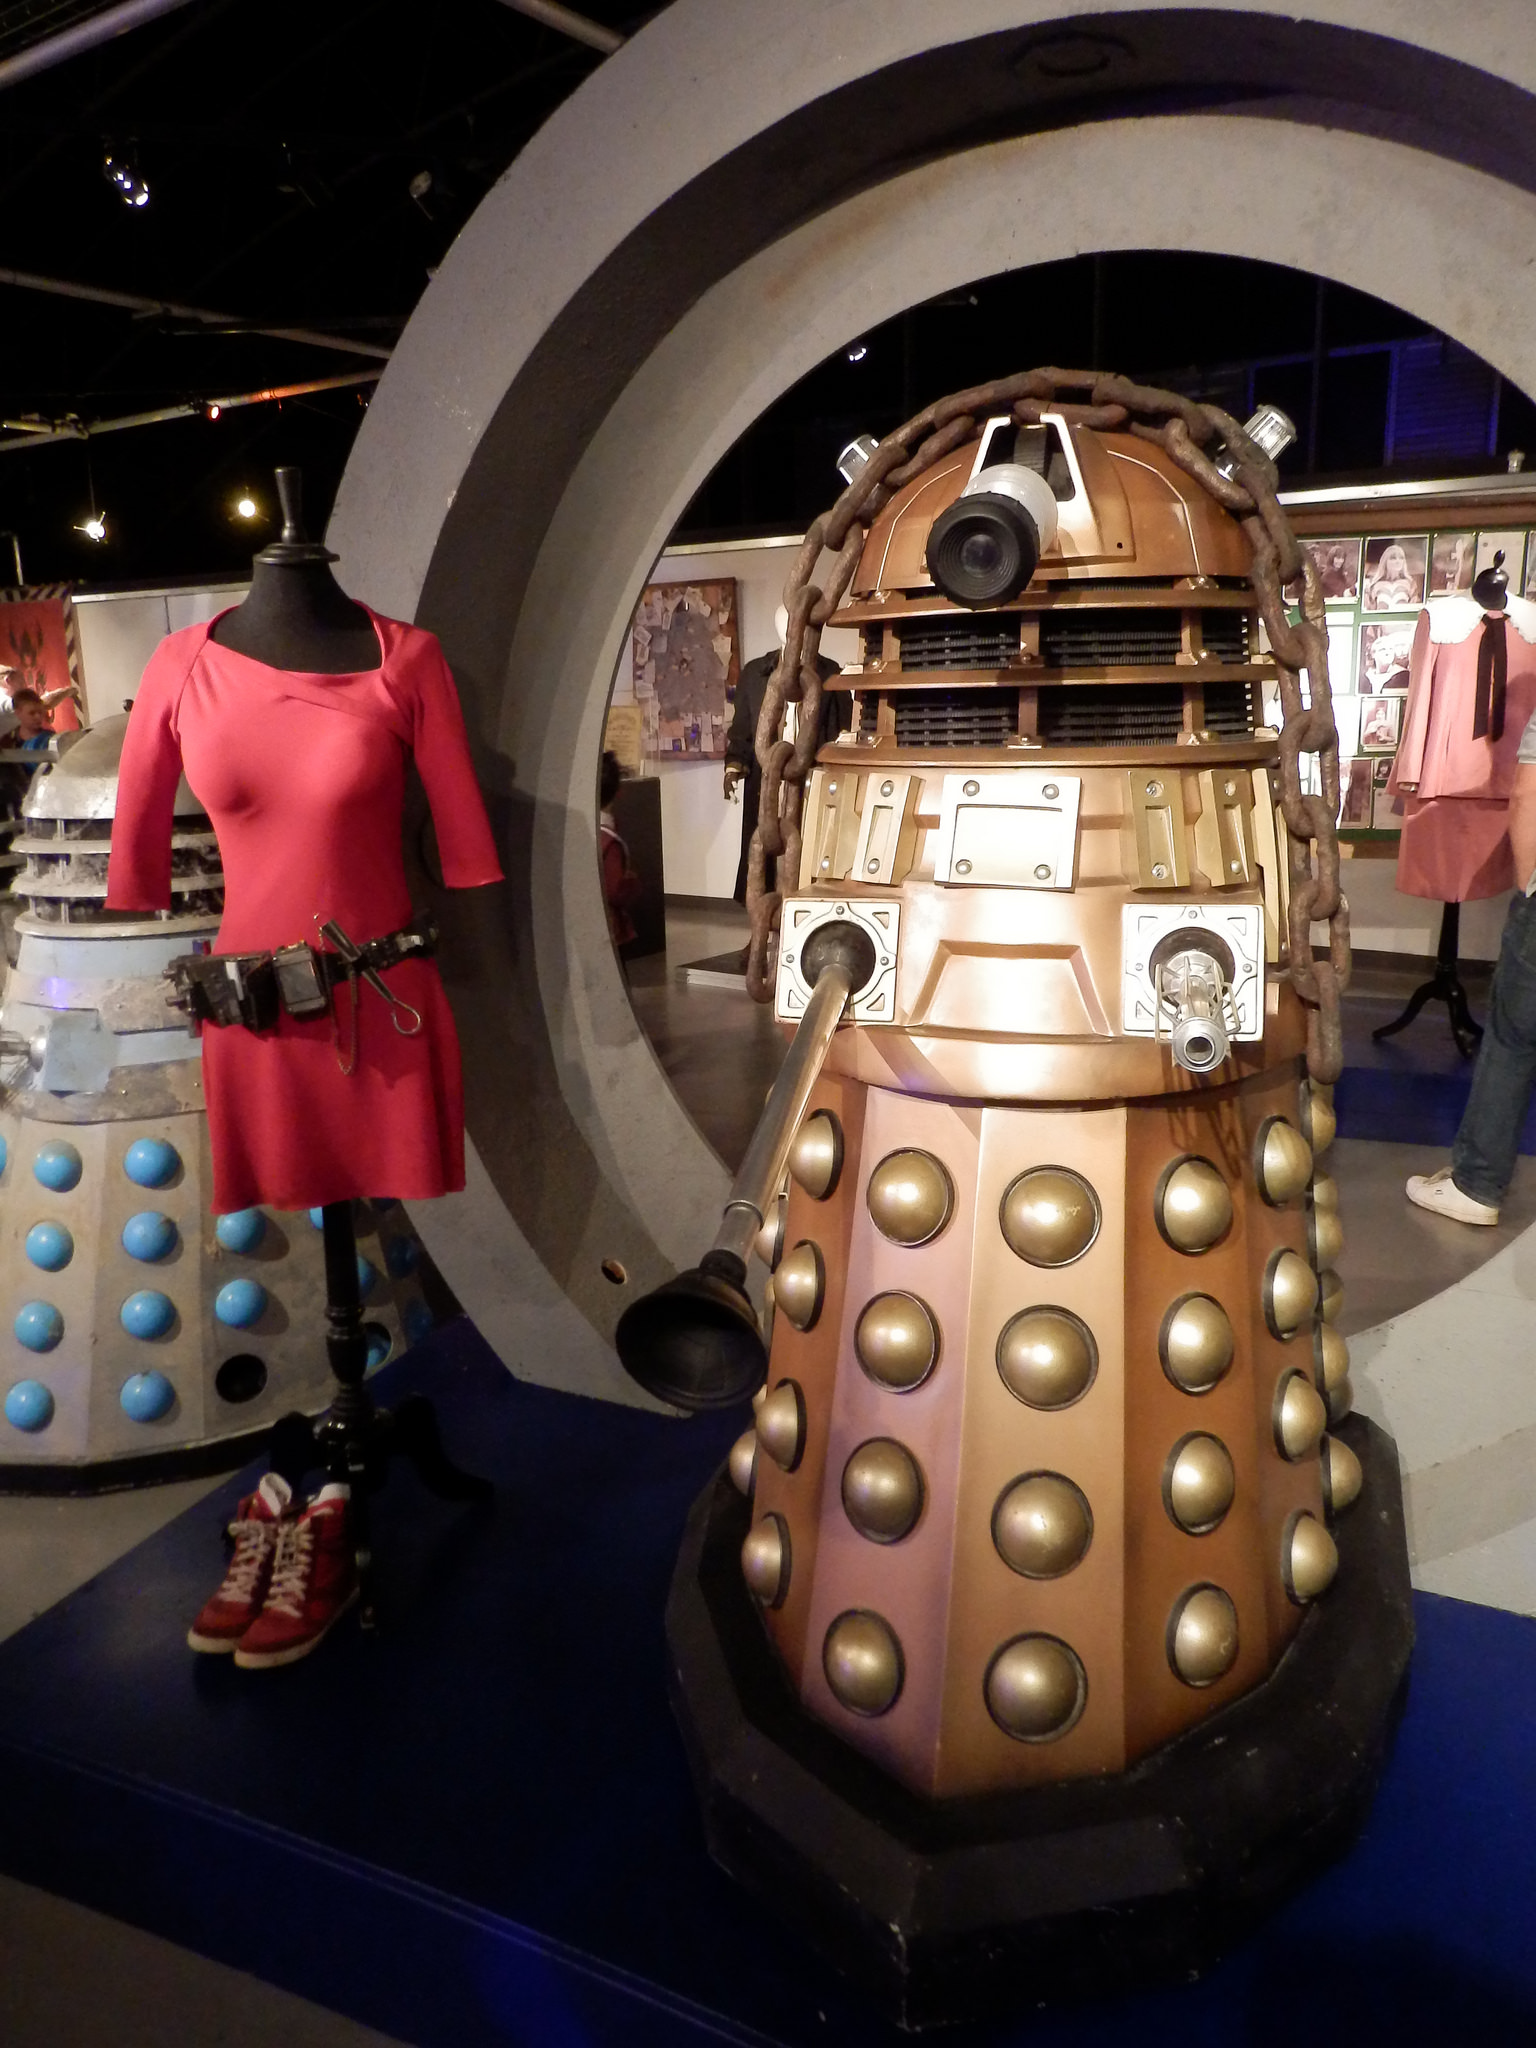 TPE EC2/EC1 as the 'Oswin' Dalek.